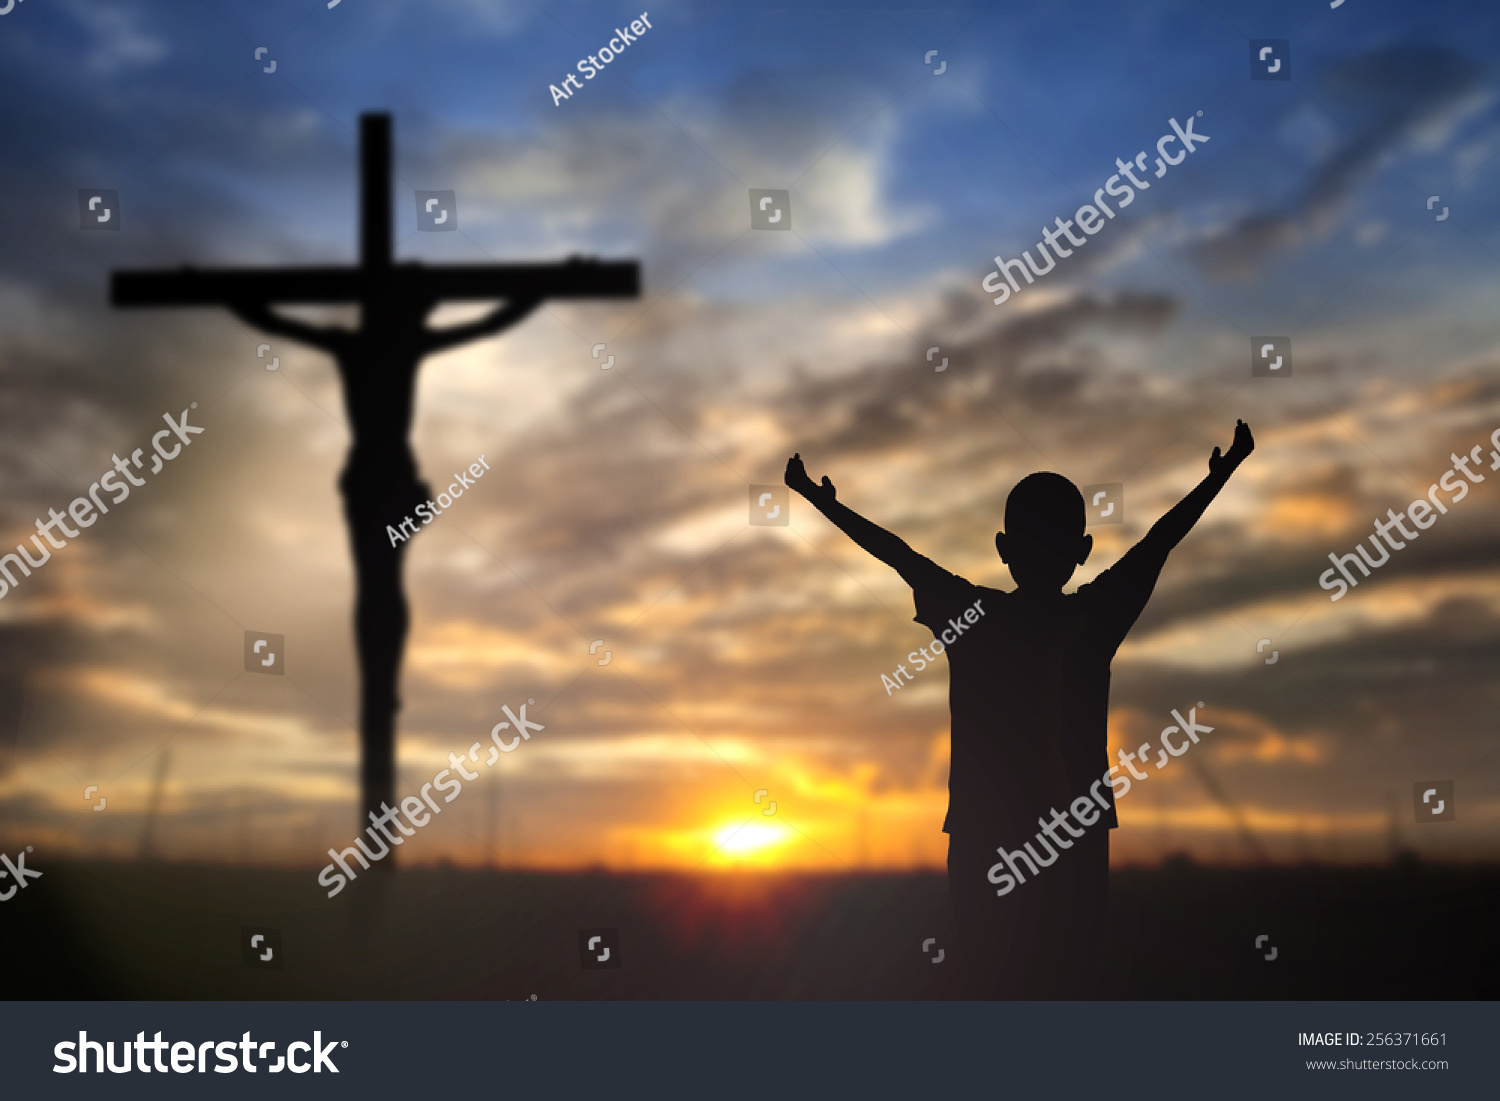 silhouette jesus christ on cross background stock photo 256371661